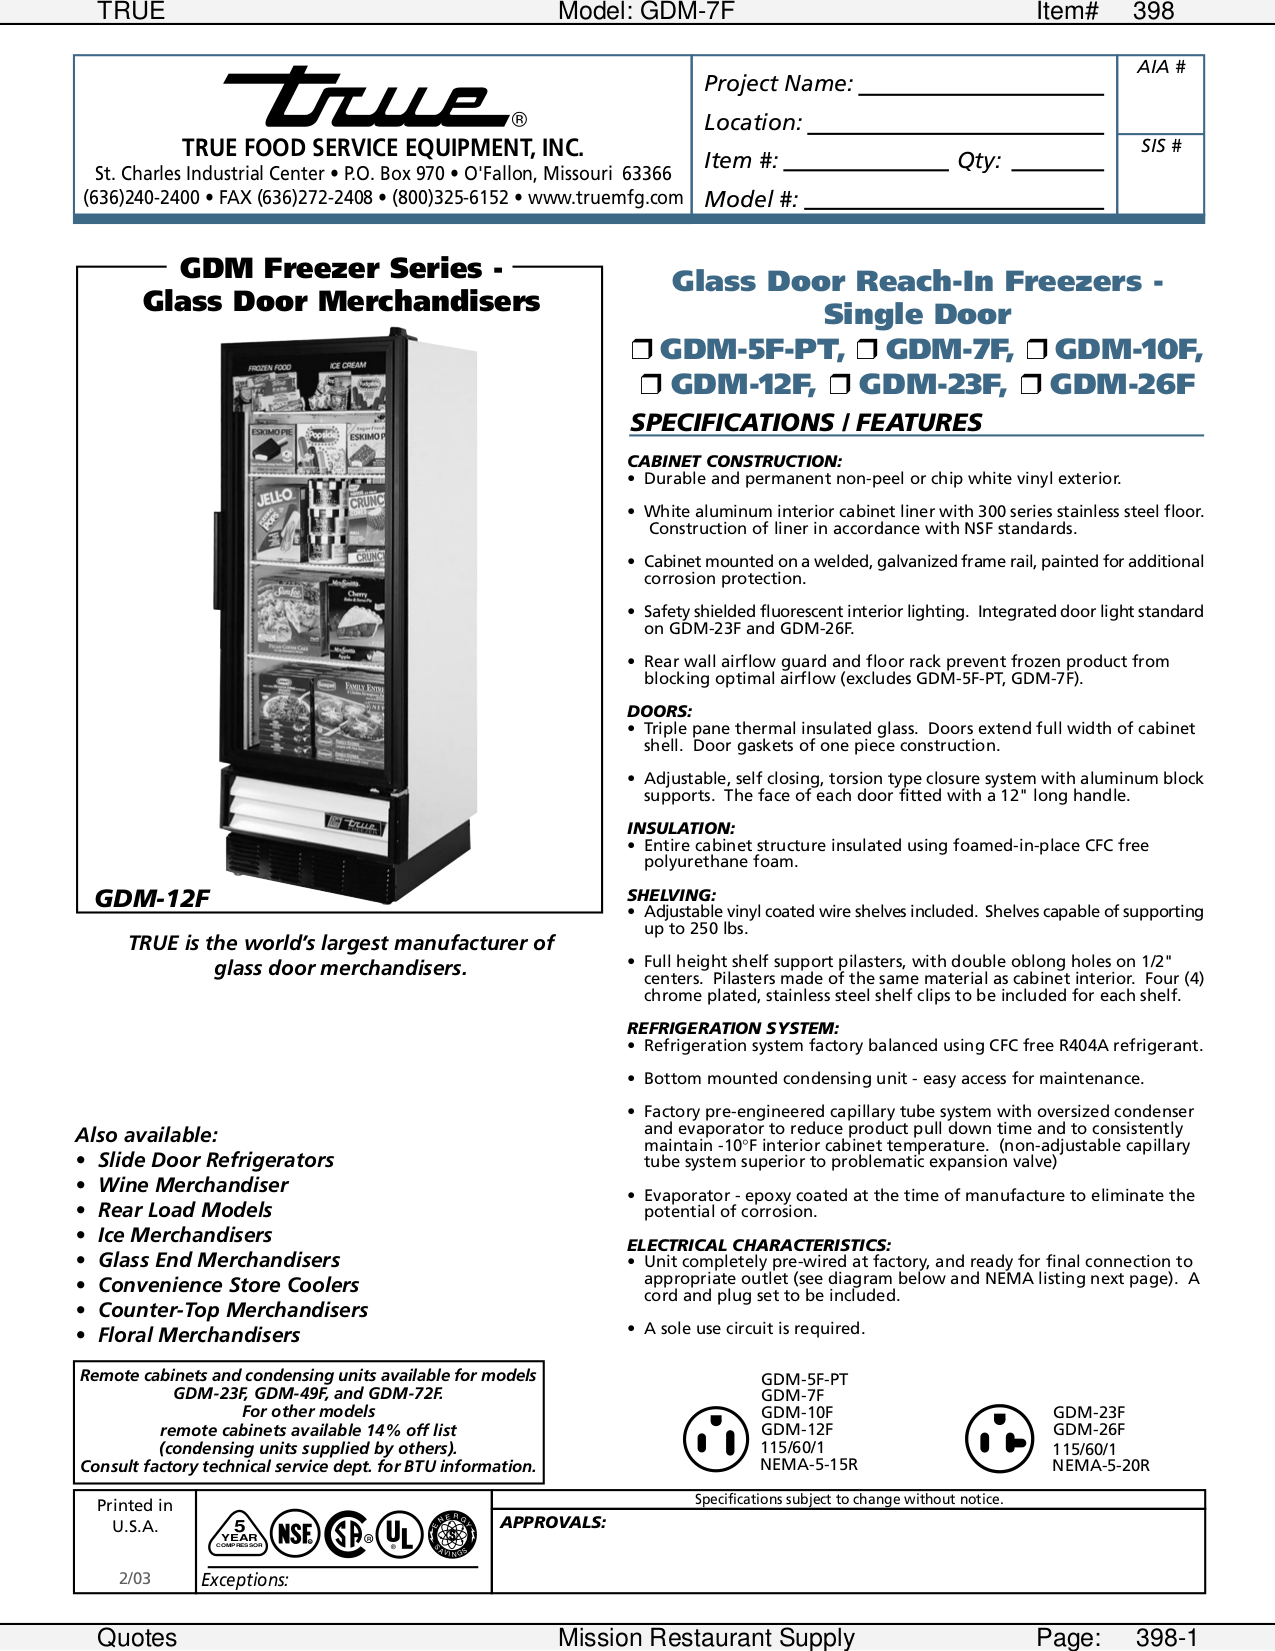 Download Free Pdf For True Gdm 5f Pt Freezer Manual Wiring Diagram Model Ts In Addition 26